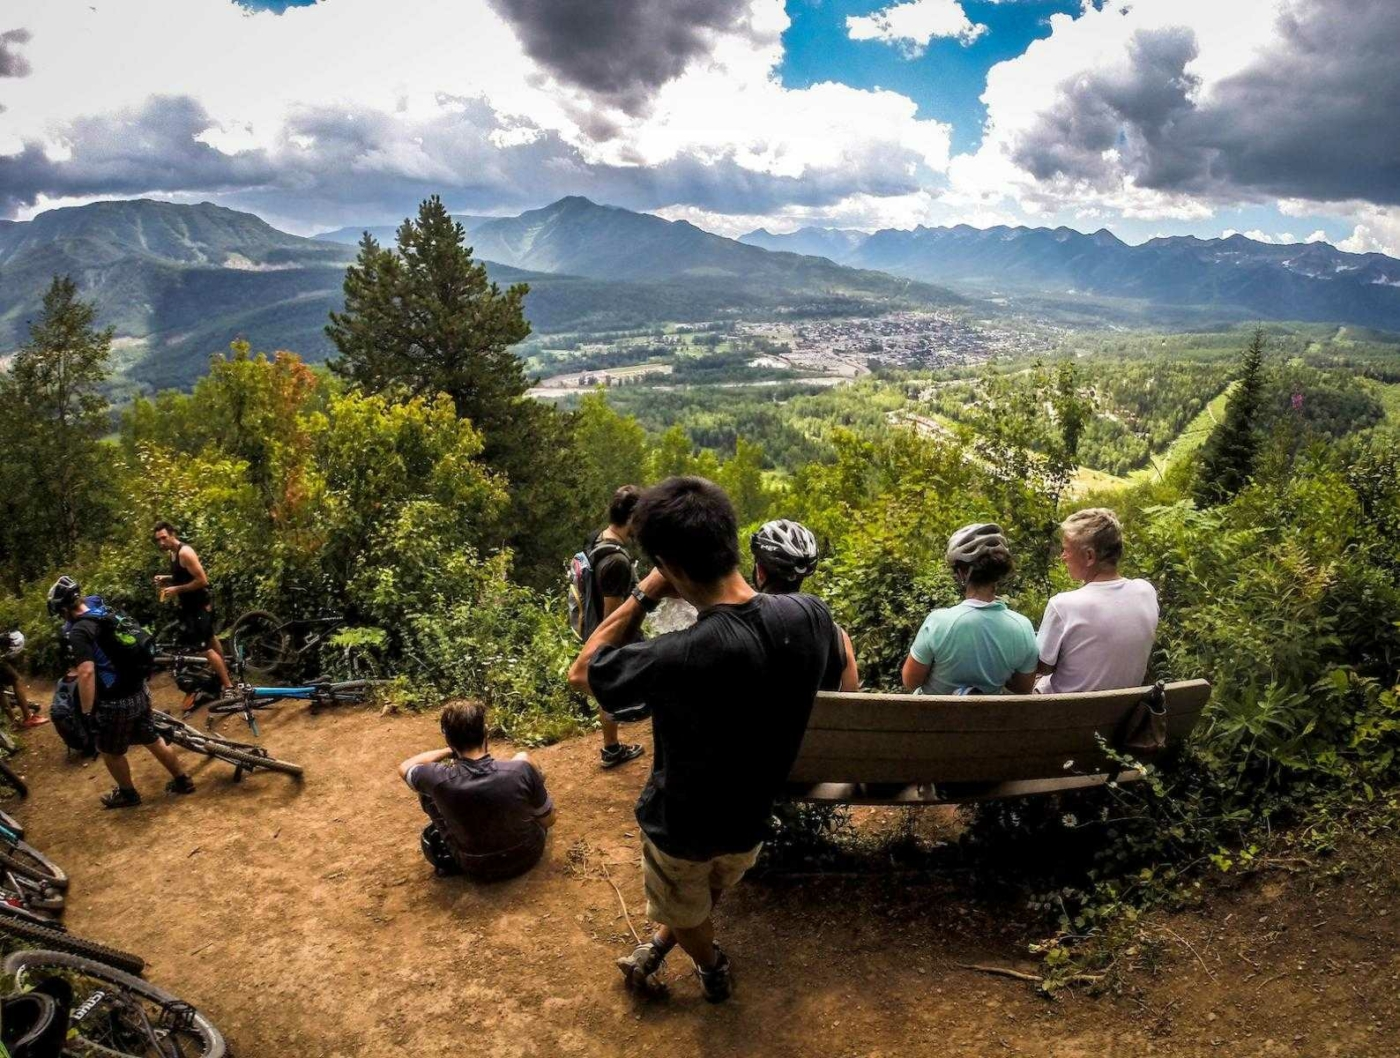 Several people resting on benches and on the ground with mountain bikes, on high viewpoint looking over green mountain valley